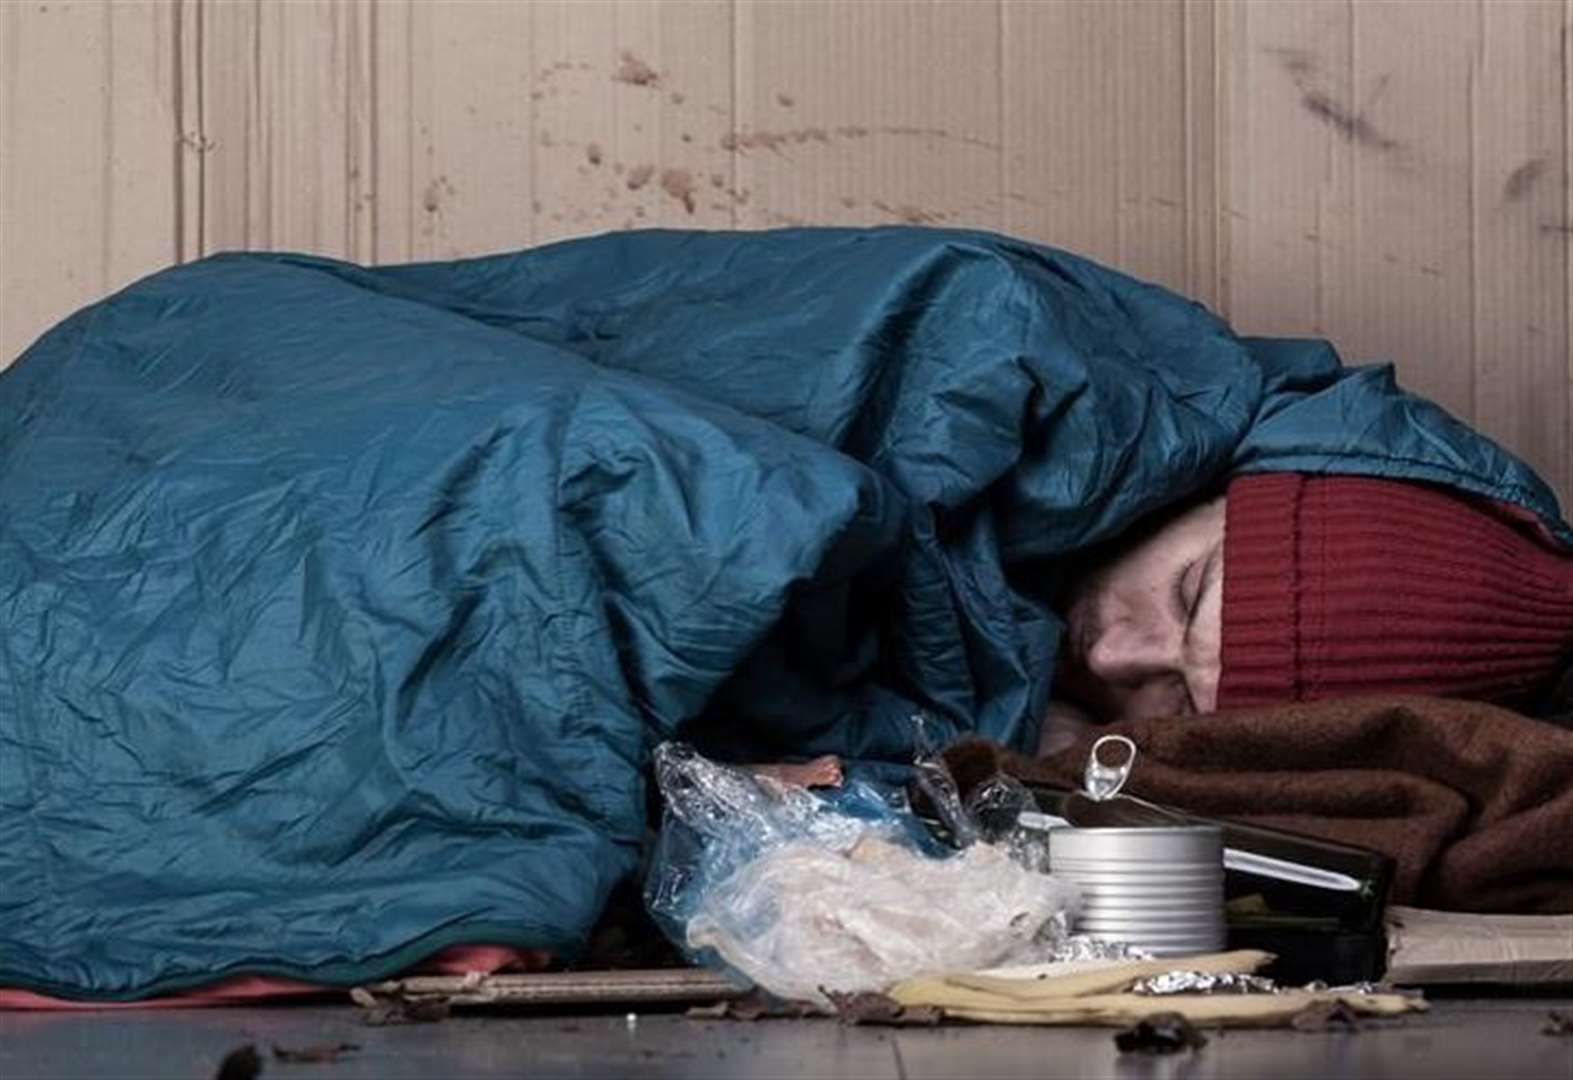 Concern for rough sleepers ahead of Christmas